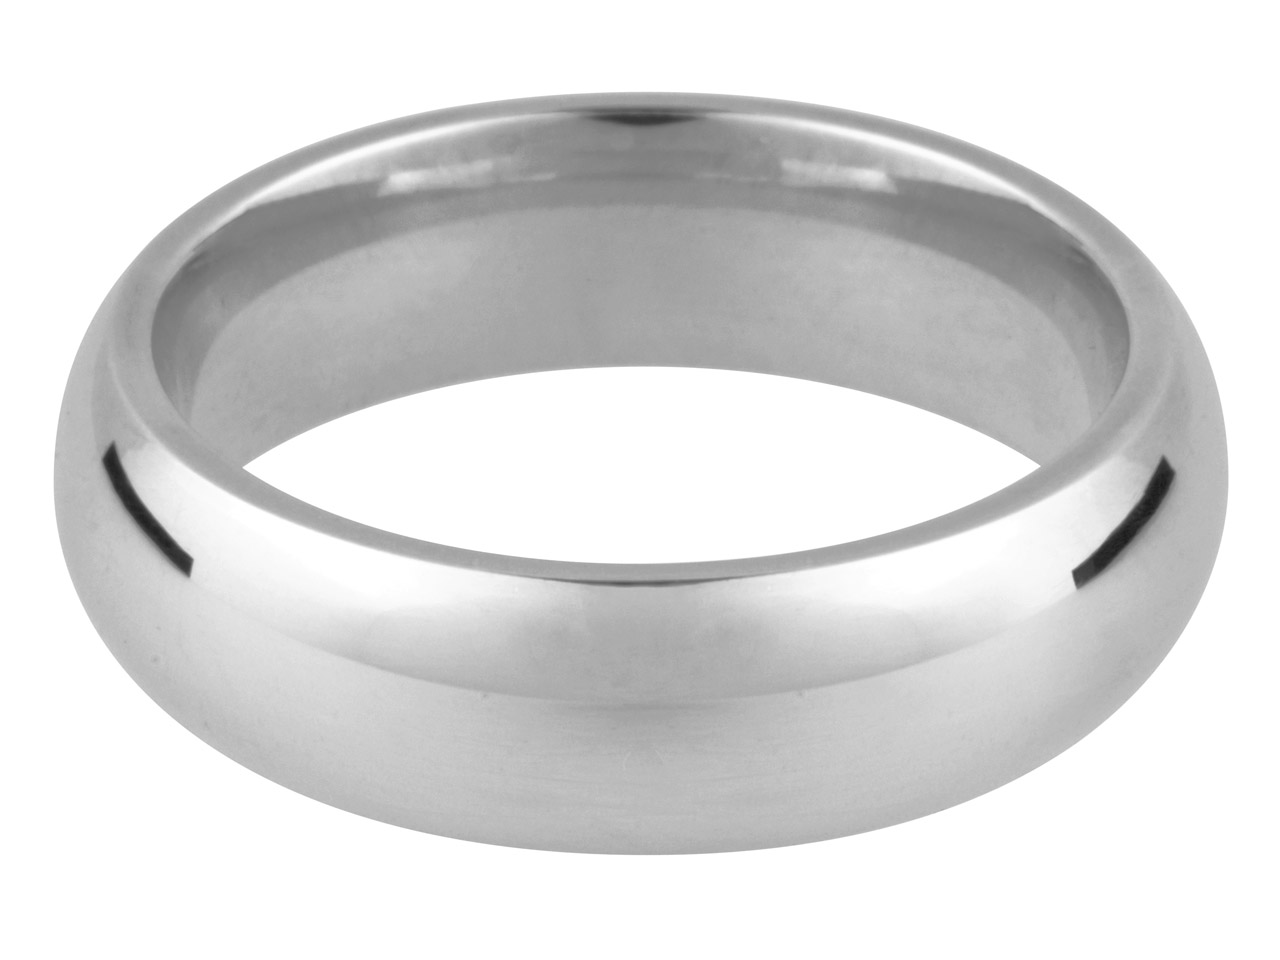 Platinum Court Wedding Ring 4.0mm O 8.7gms Heavy Weight Hallmarked Wall Thickness 2.00mm